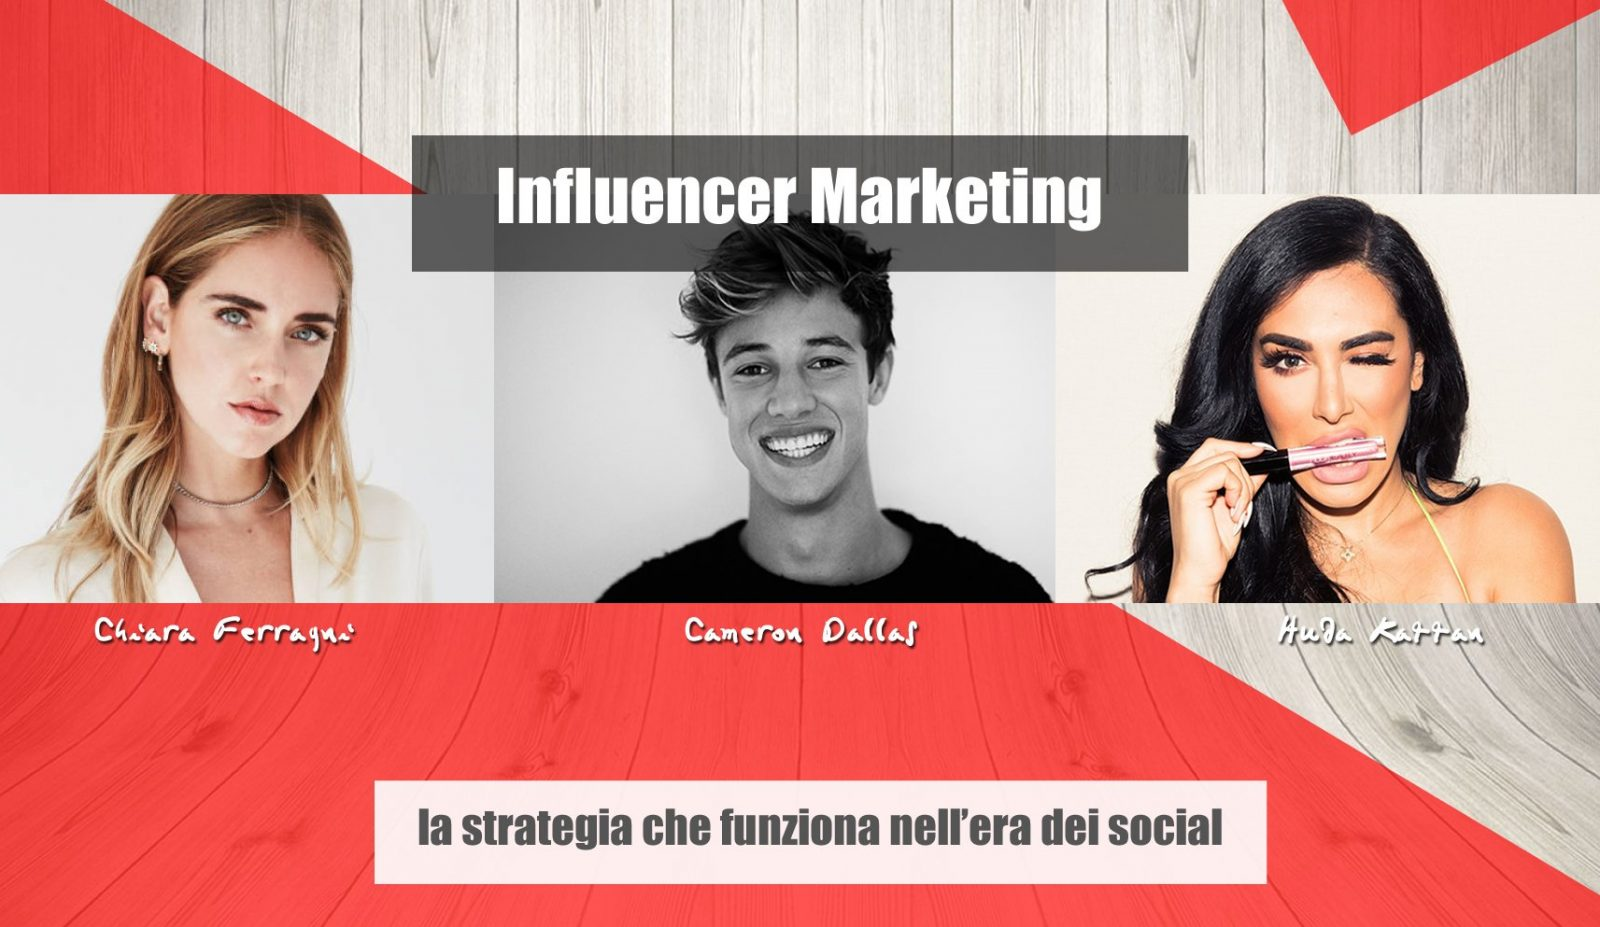 Influencer marketing, la strategia che funziona nell'era dei social